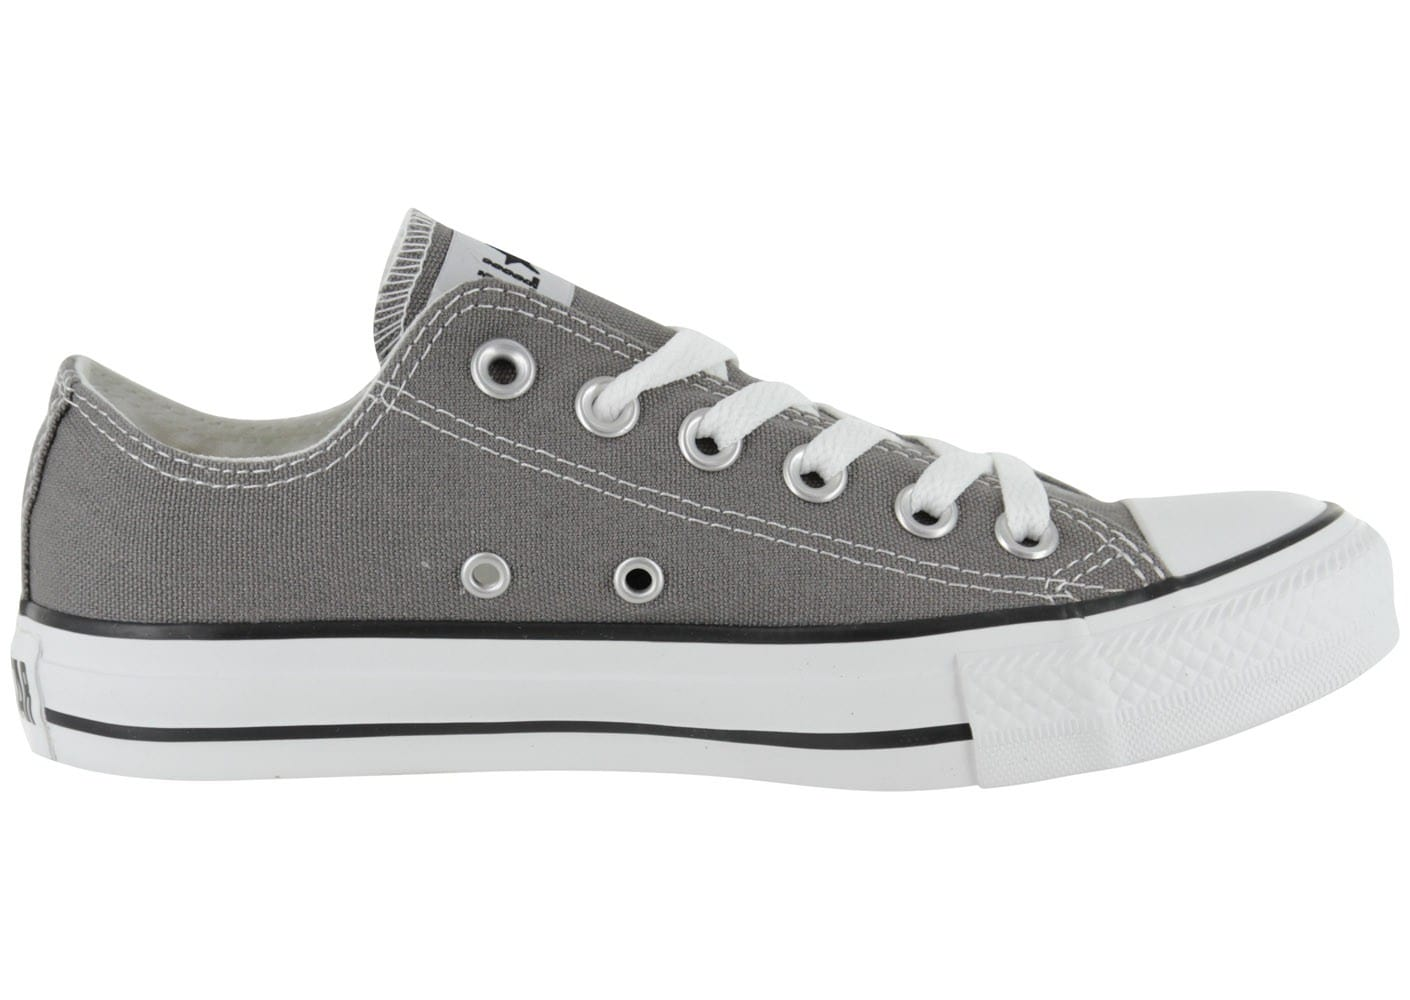 converse chuck taylor all star basse grise chaussures femme chausport. Black Bedroom Furniture Sets. Home Design Ideas